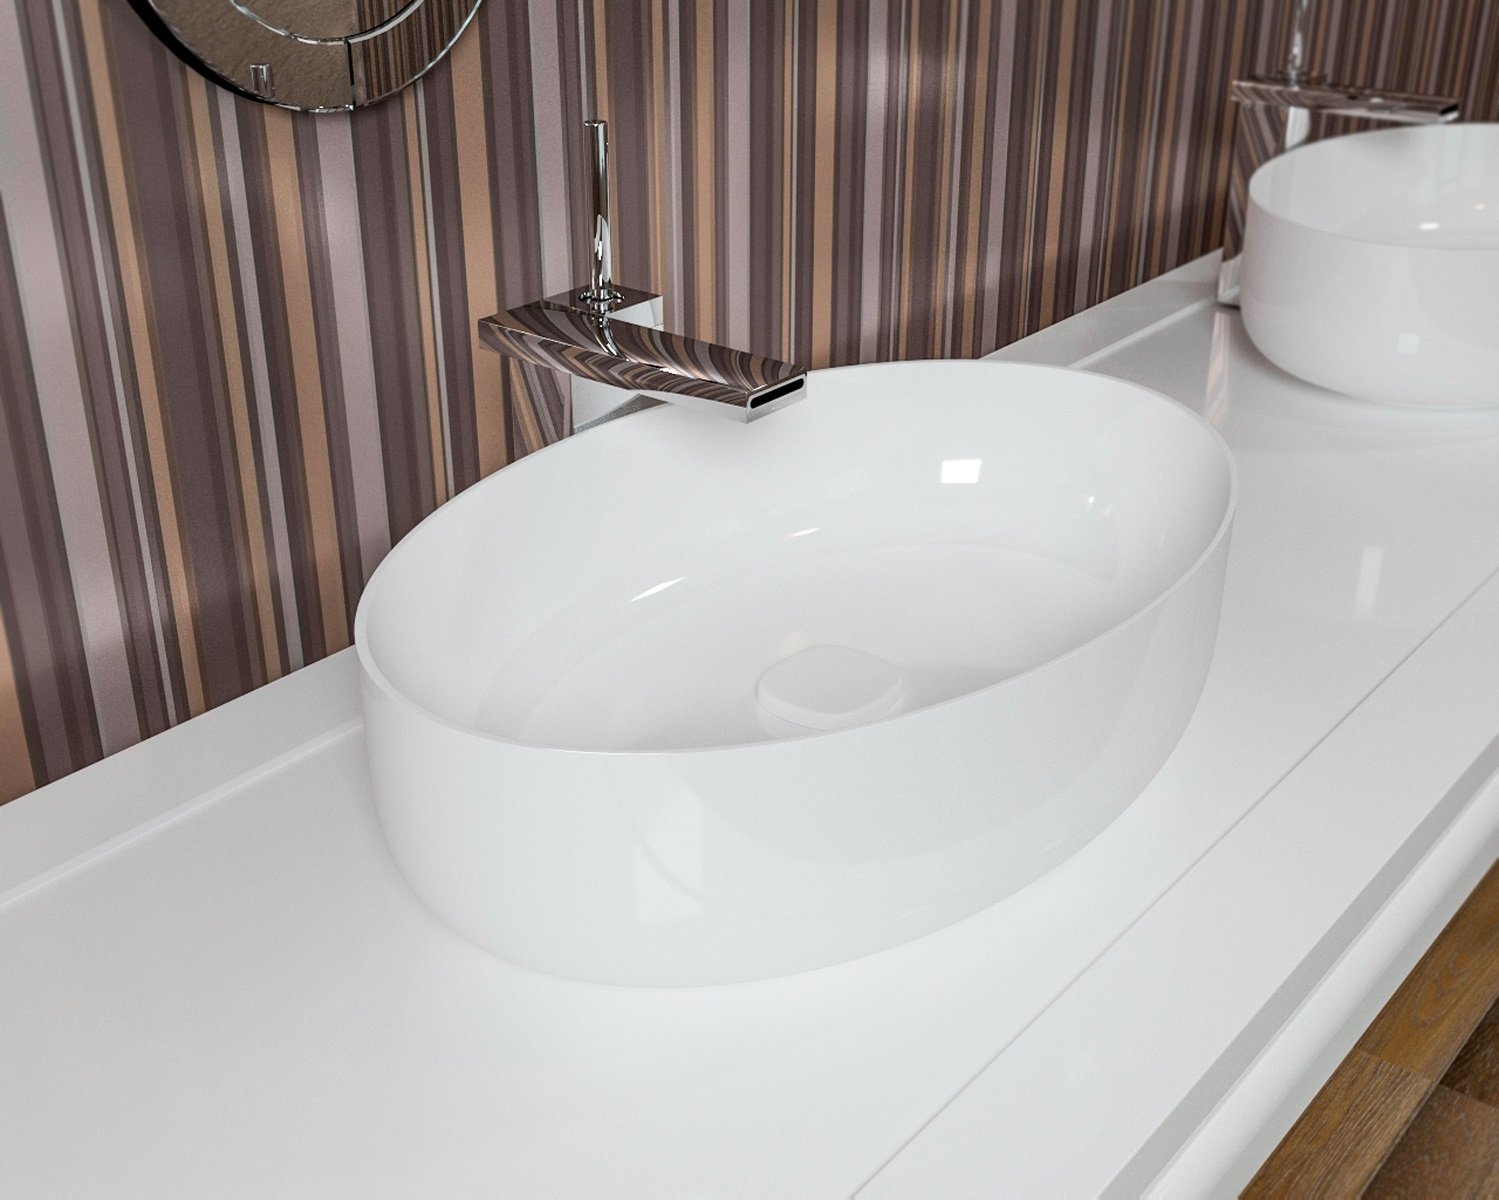 Metamorfosi Wht Ceramic Vessel Sink web 1